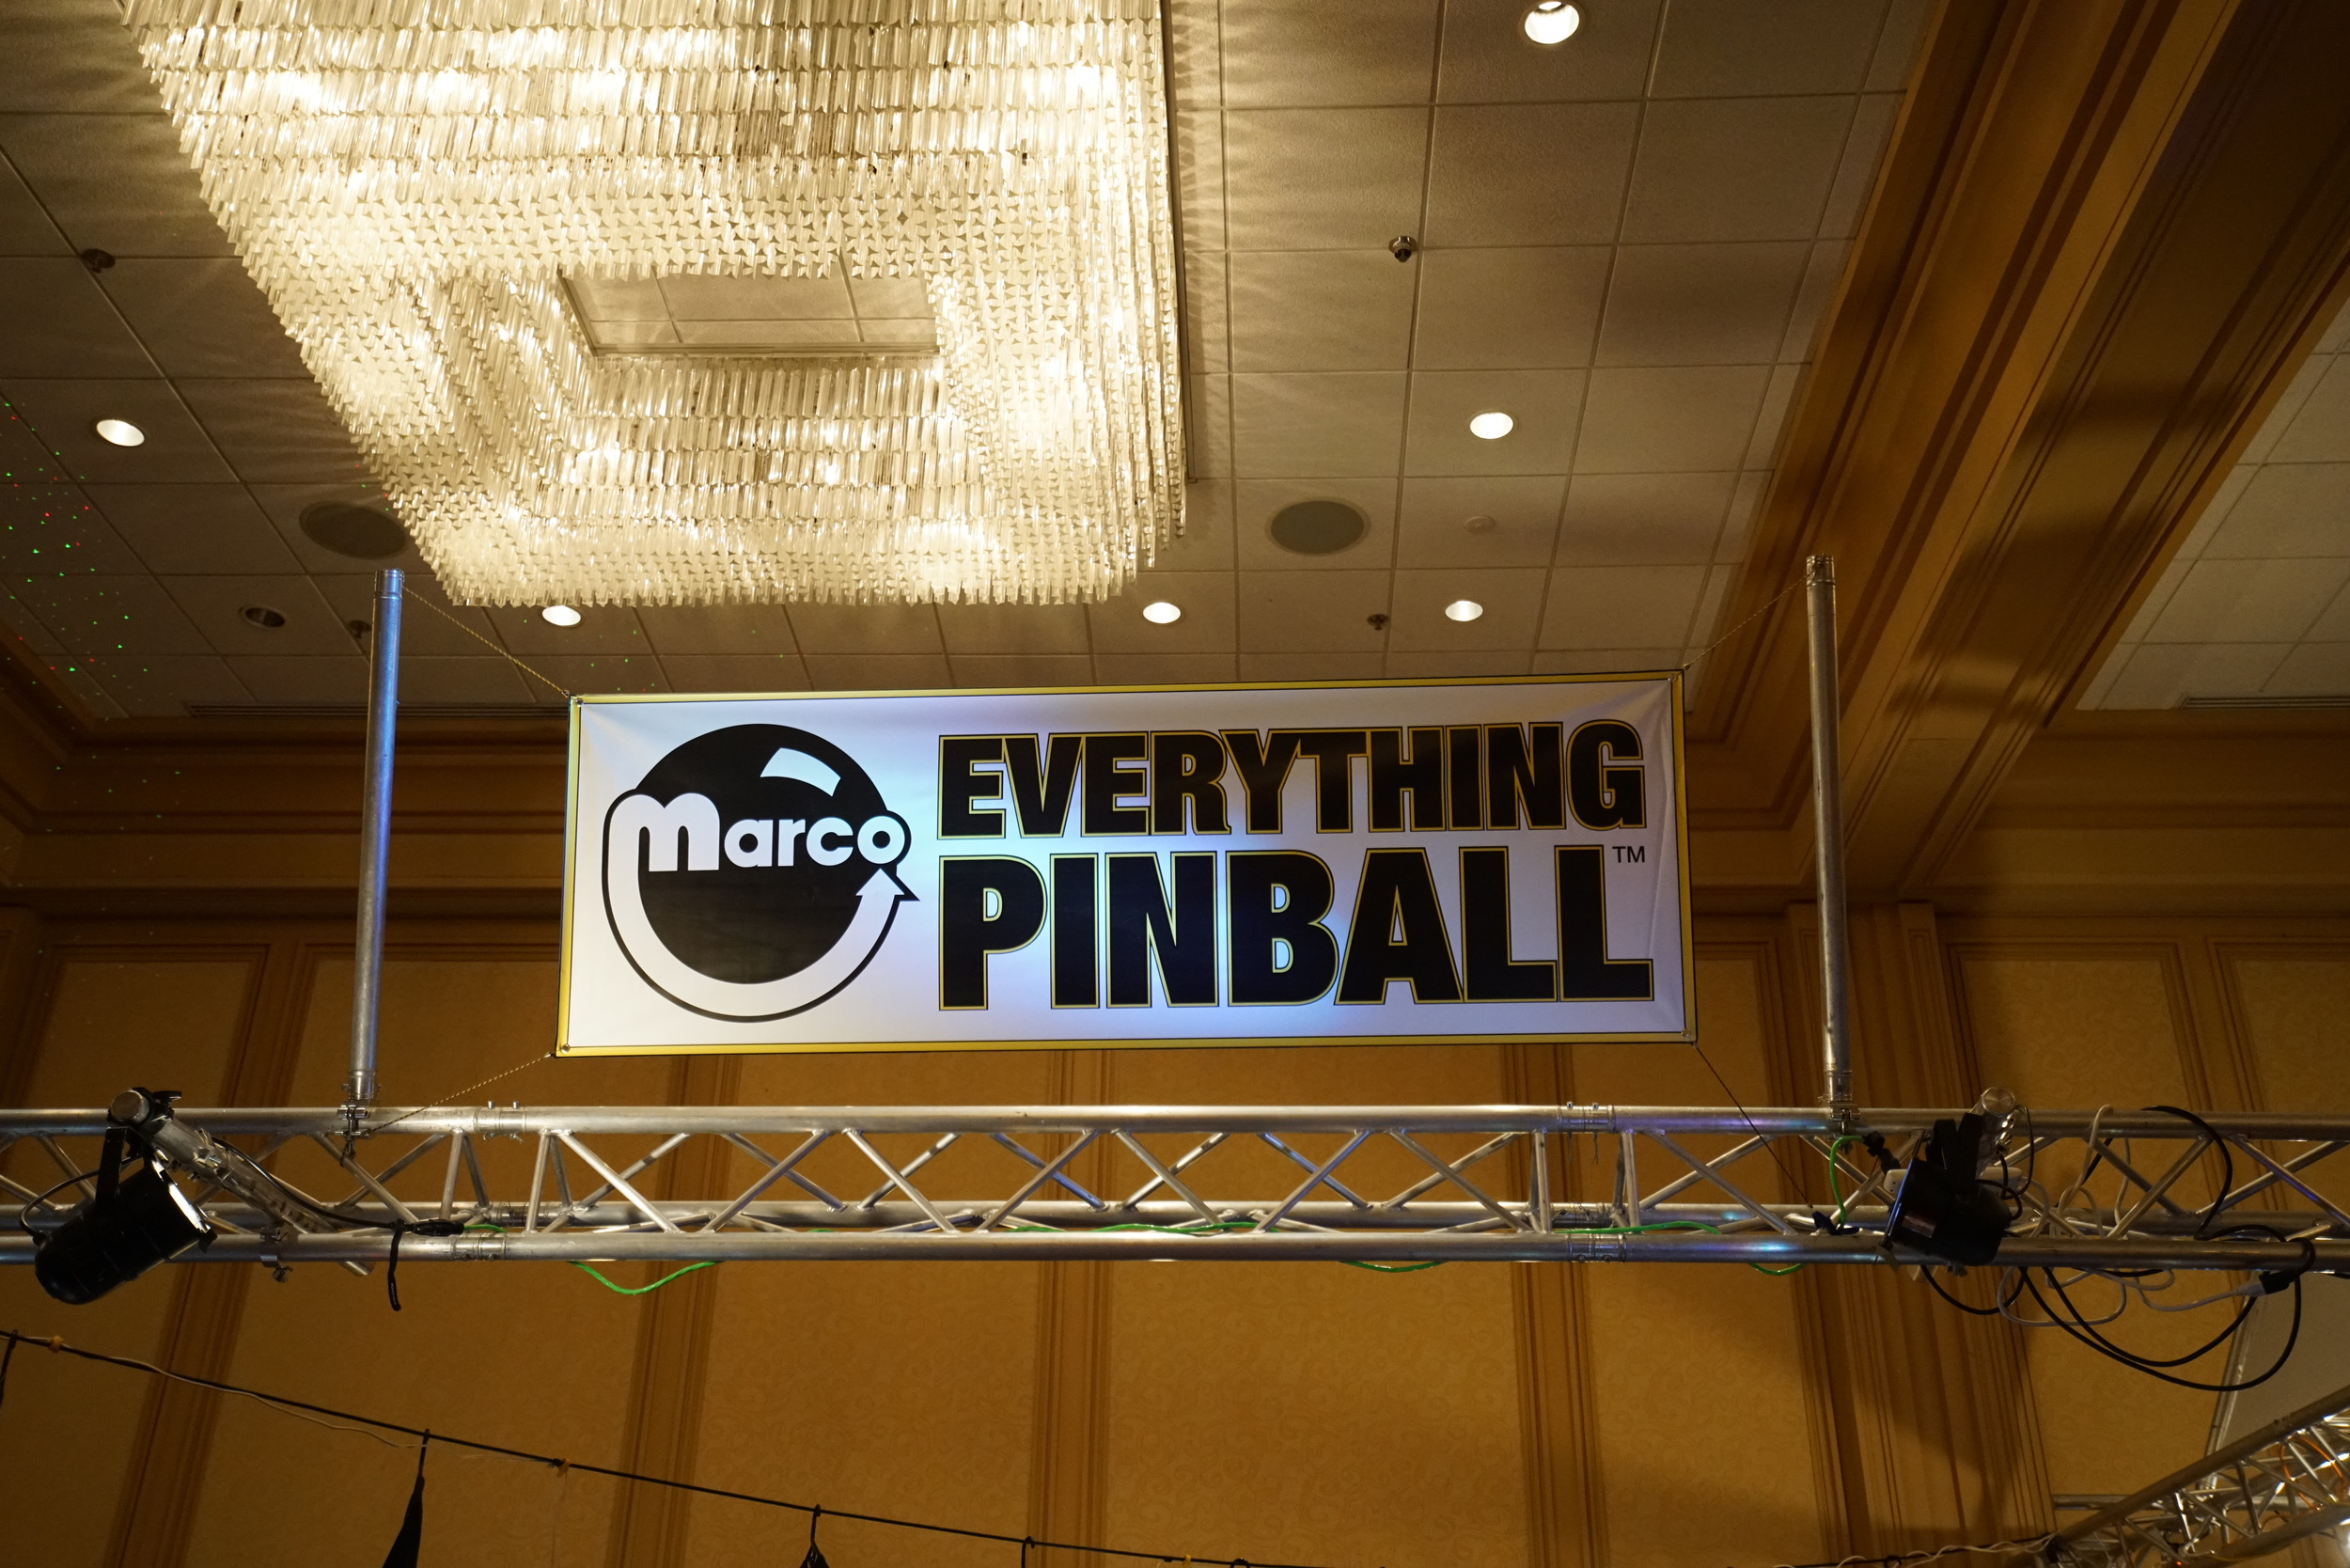 Marco had an excellent showing at this event. Really appreciate the new titles they brought out for us to play!